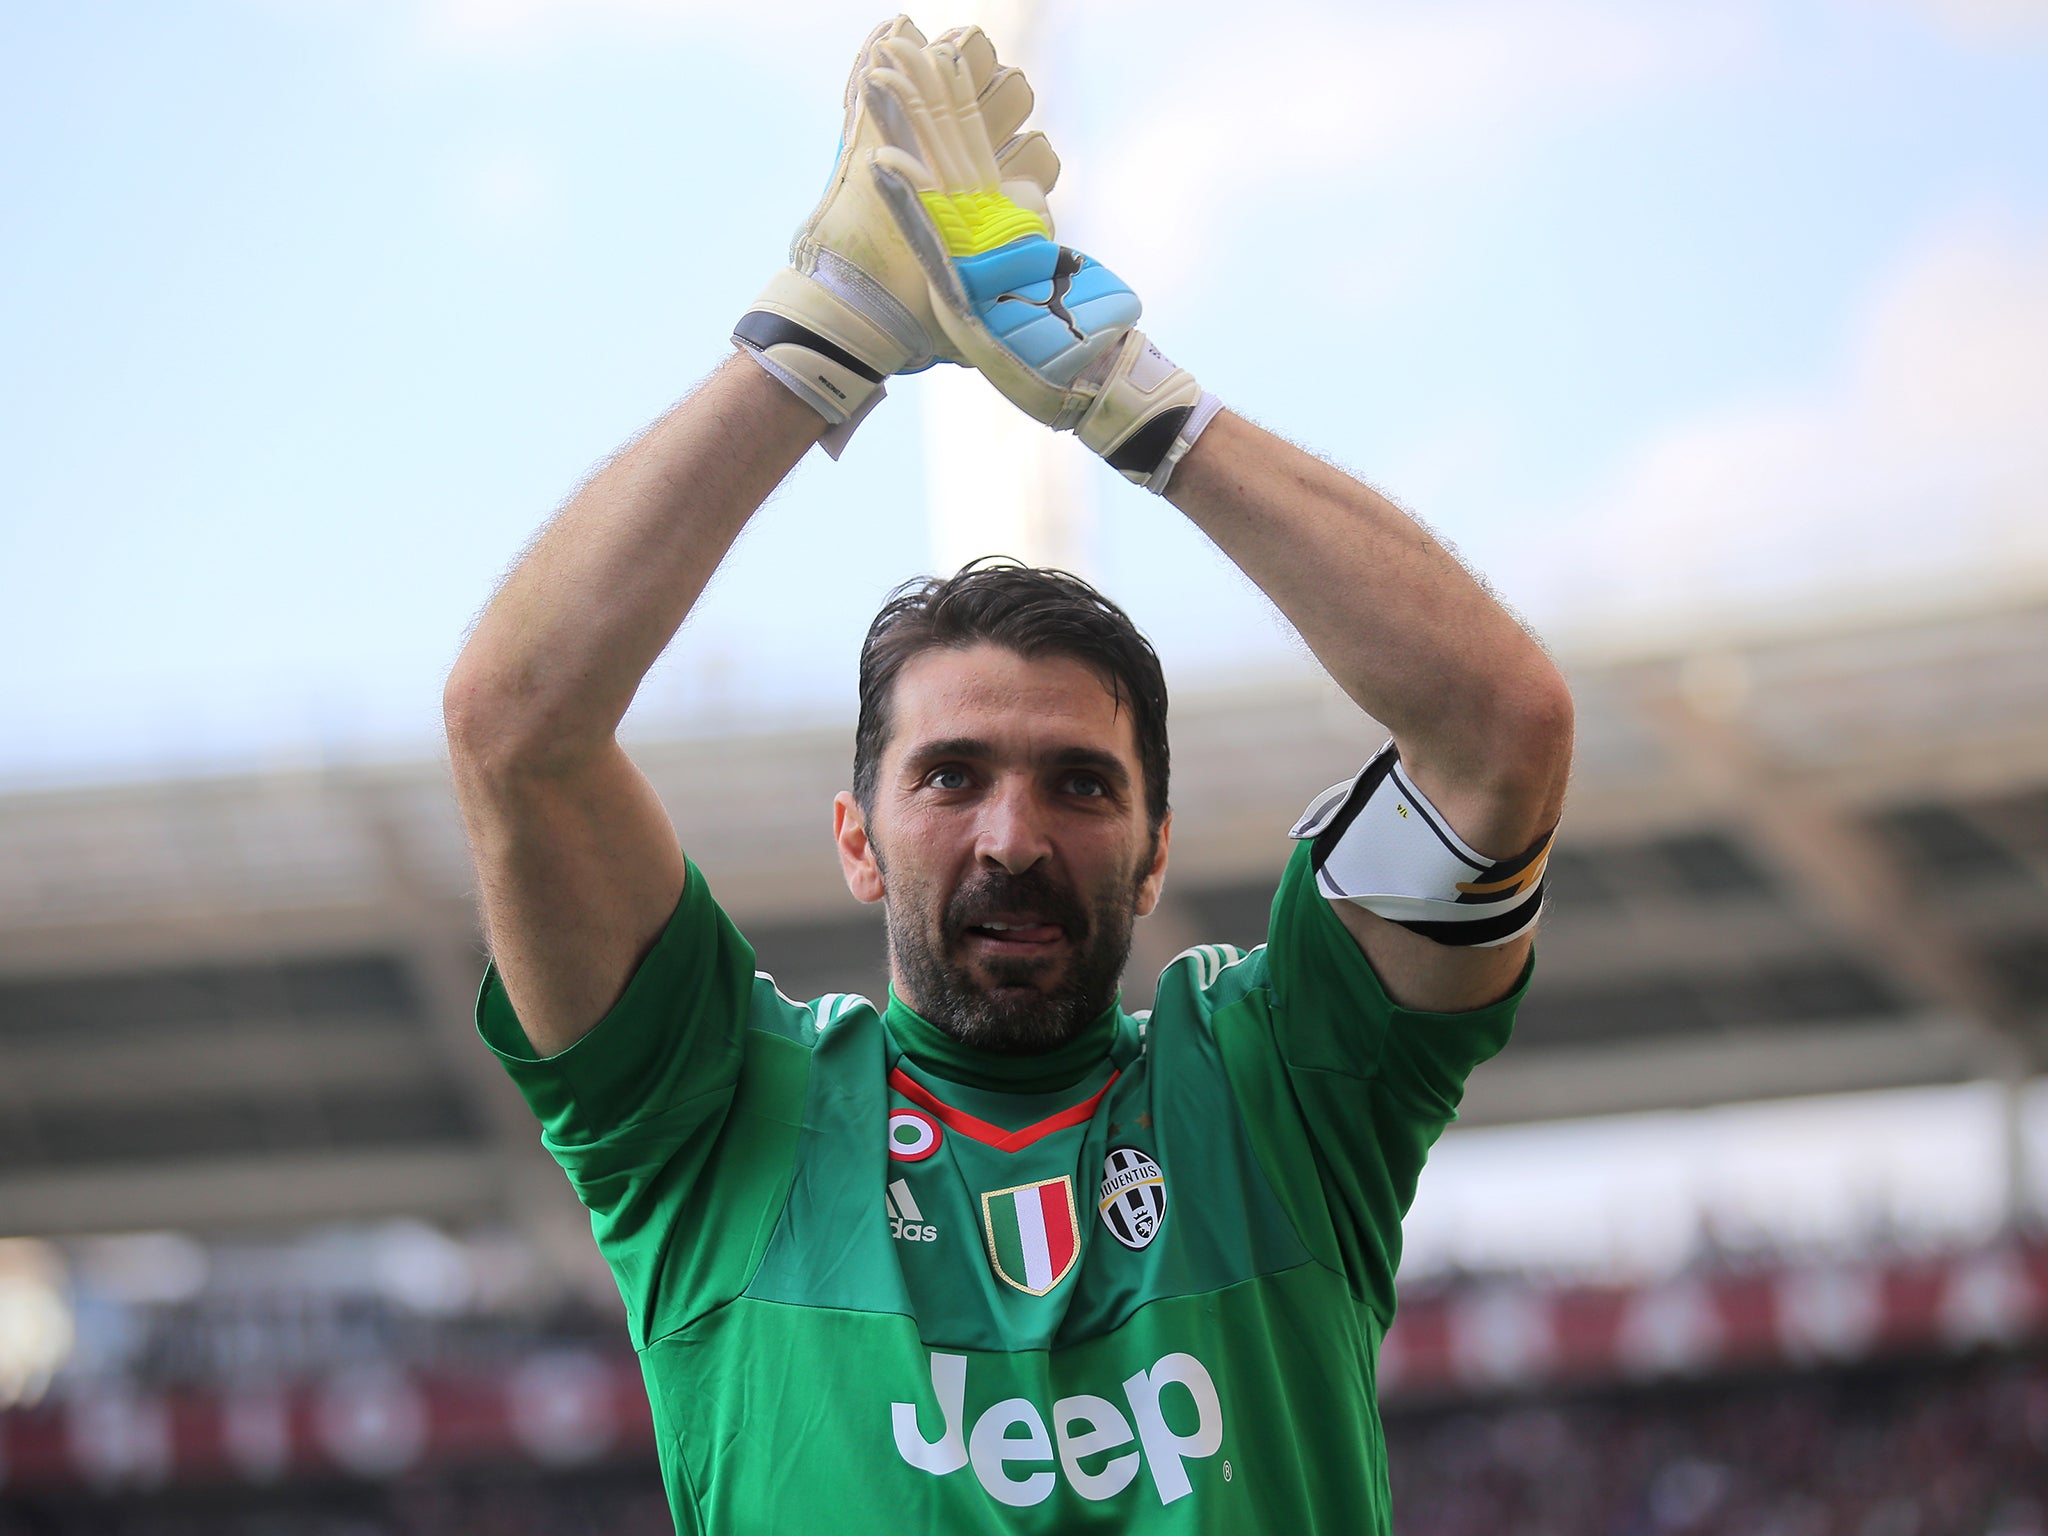 buffon - photo #19